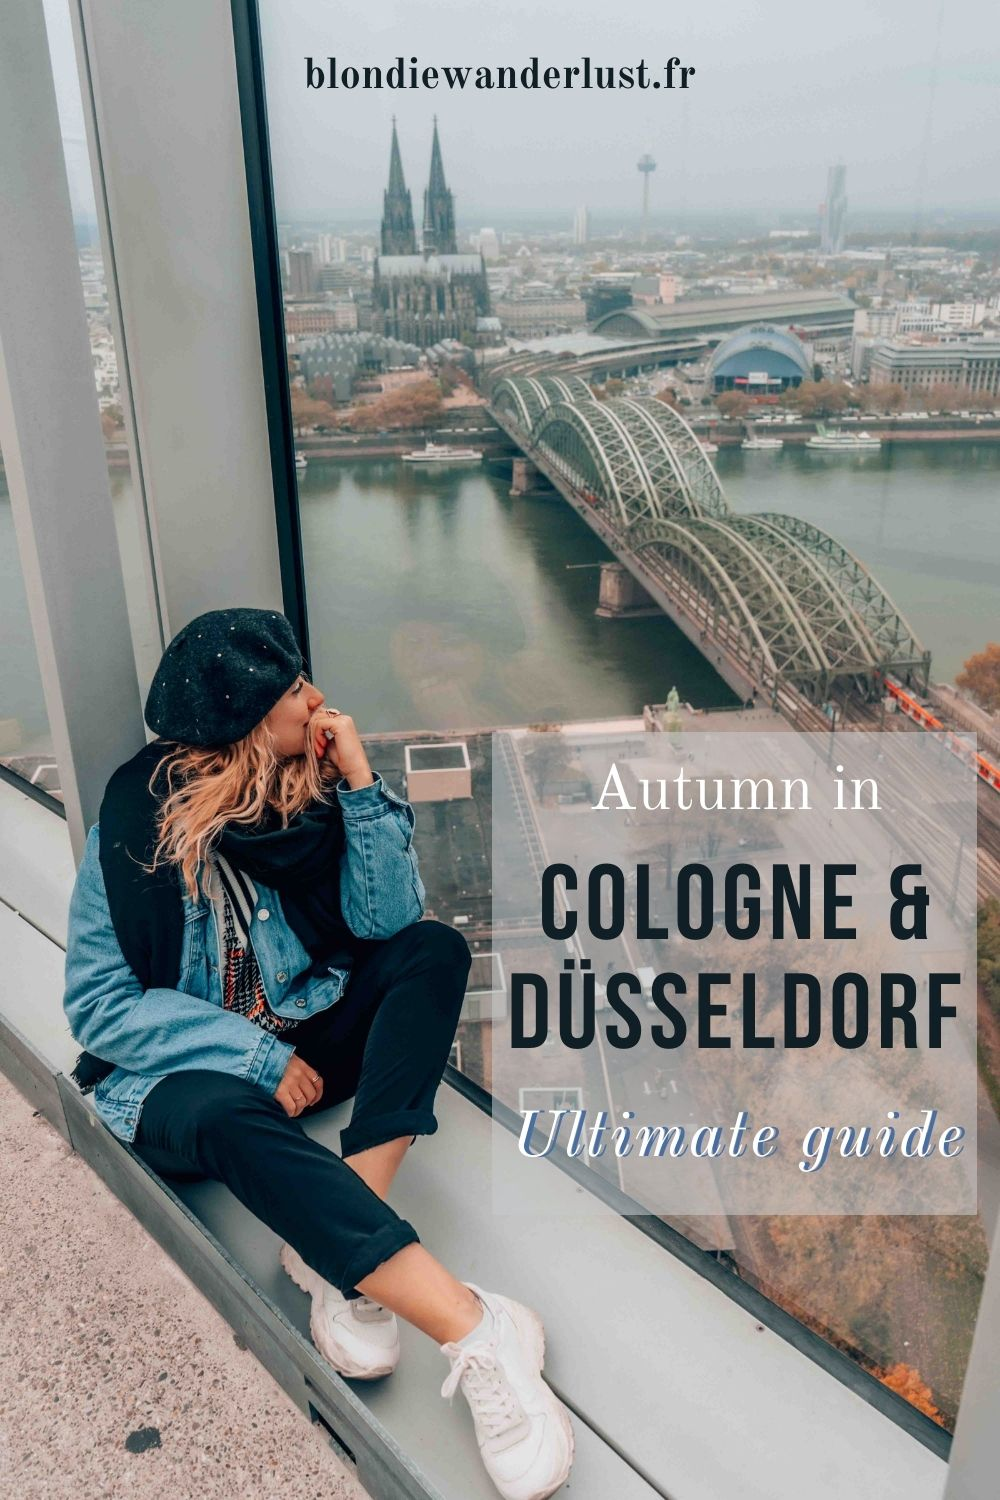 The ultimate guide to spend an Autumn weekend in Cologne & Düsseldorf